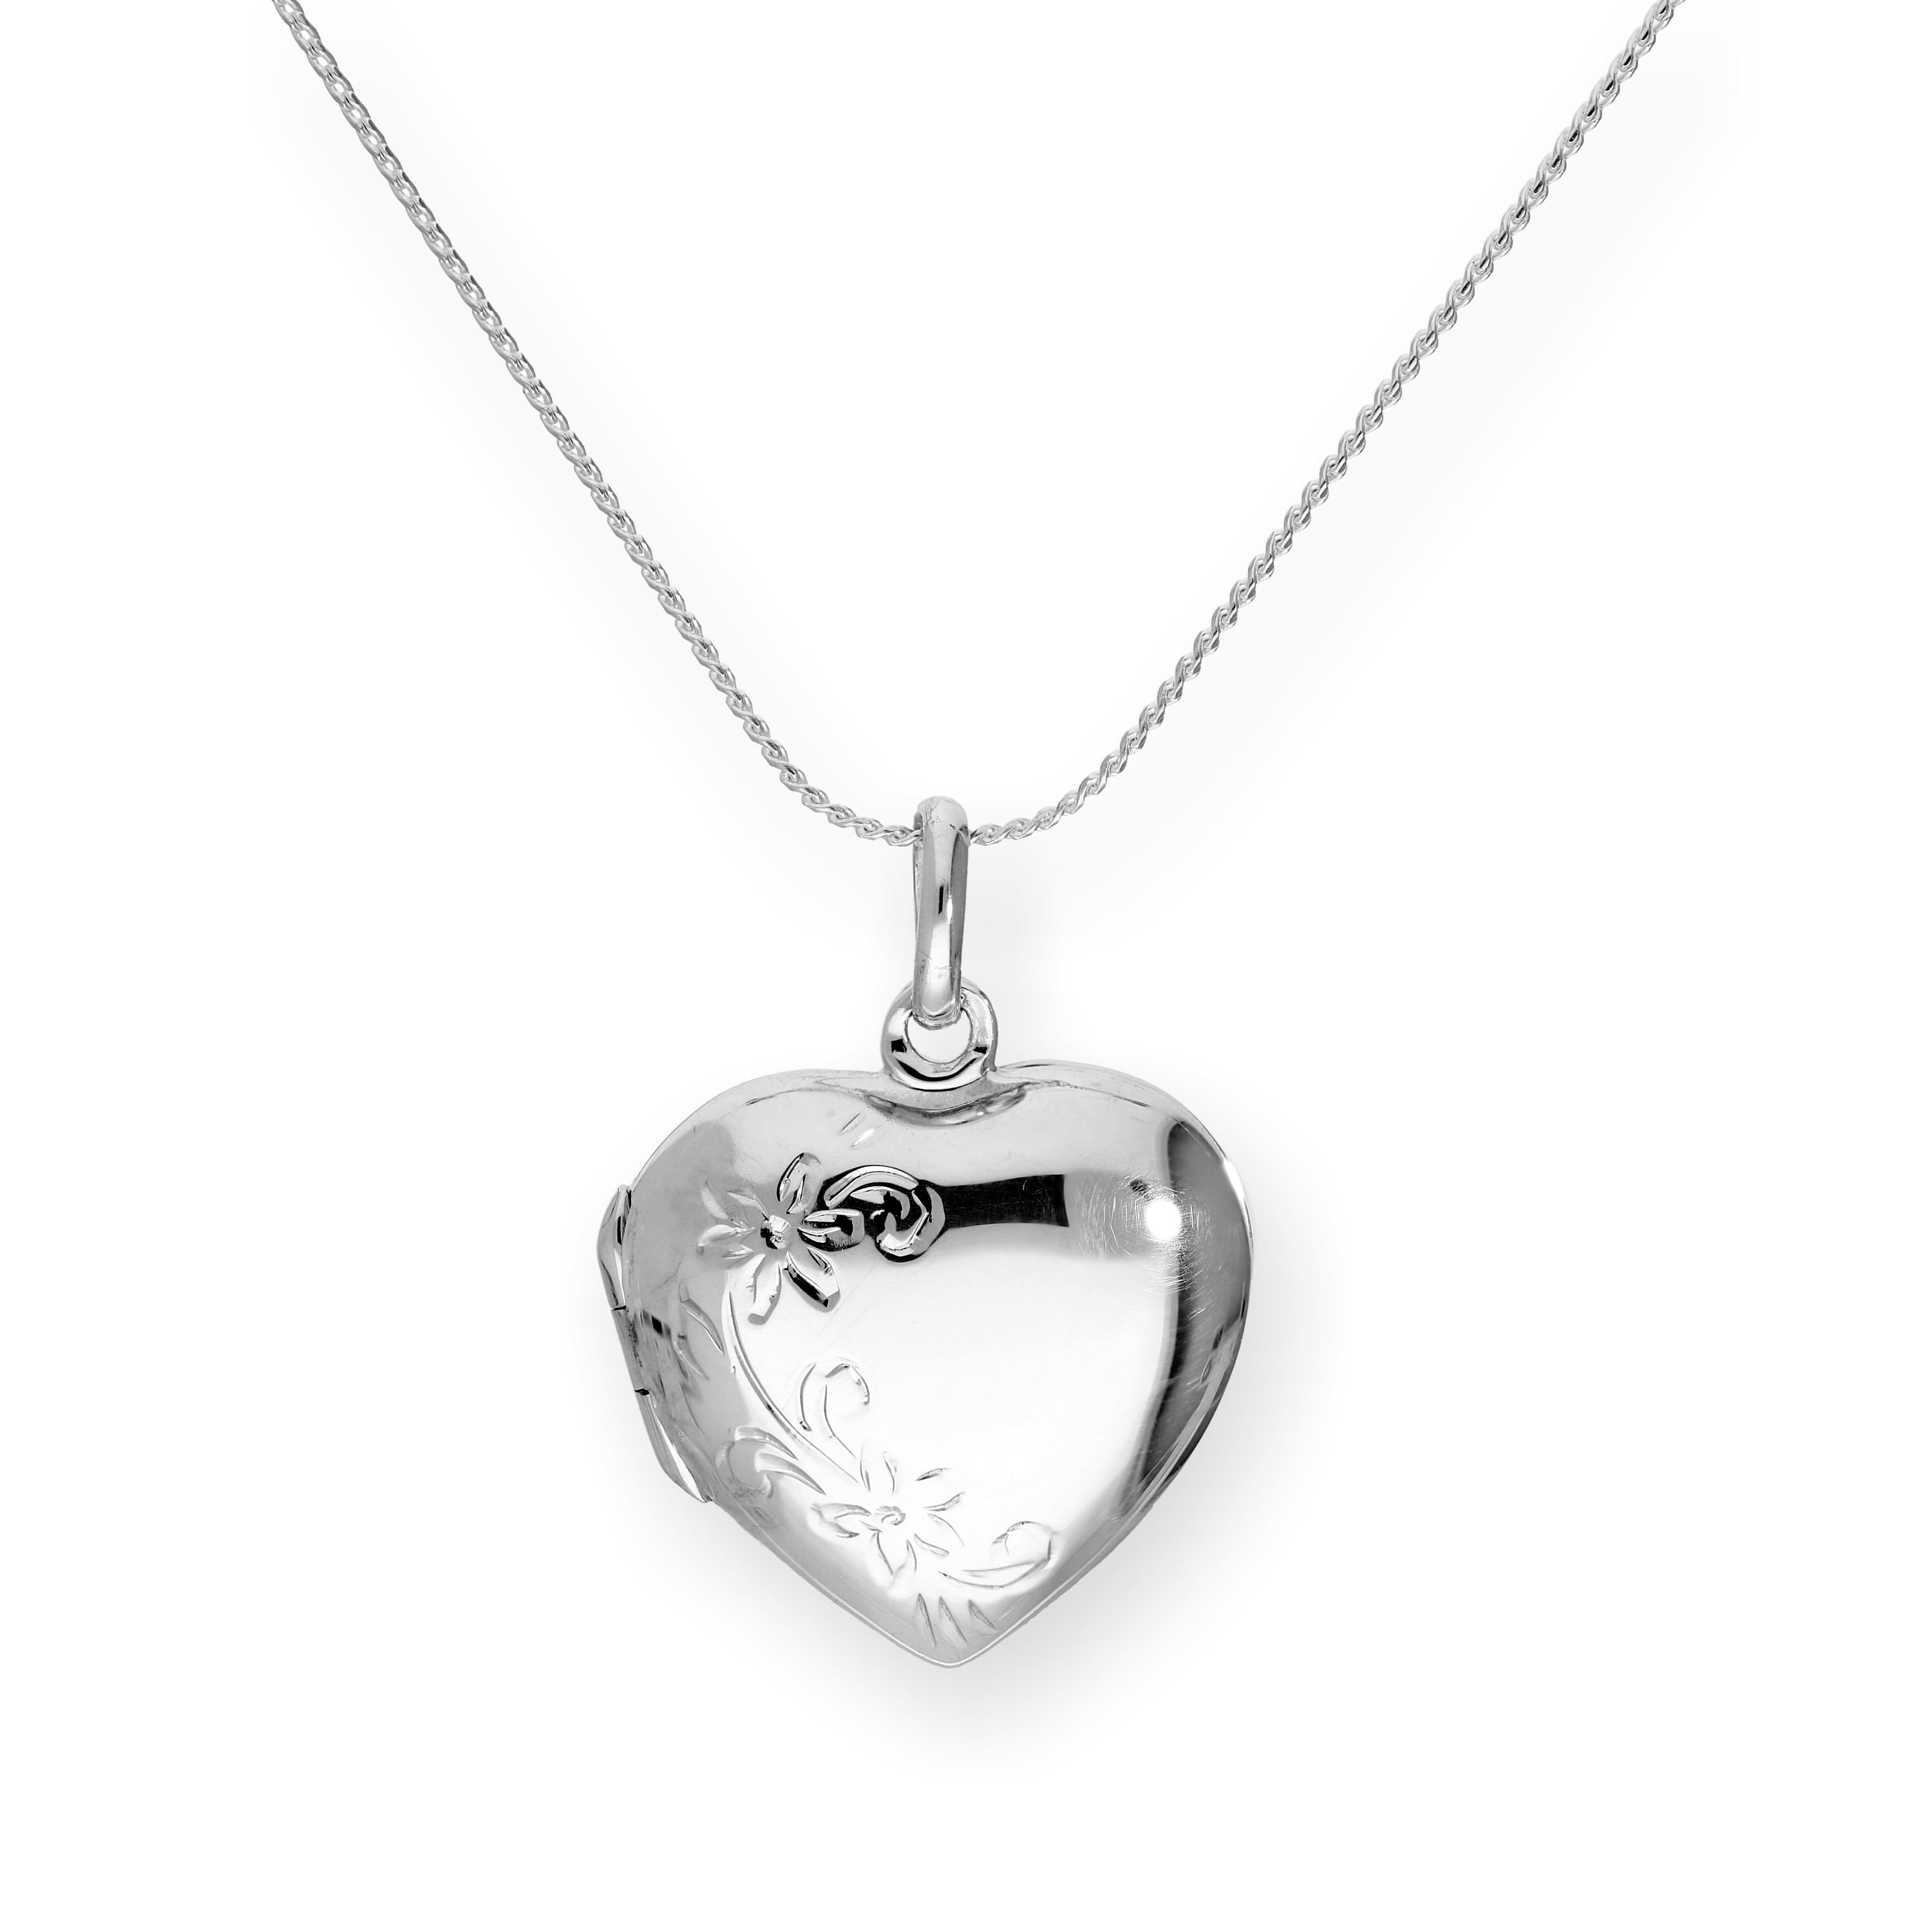 An image of Sterling Silver Engravable Floral Heart Locket on Chain 16 - 22 Inches